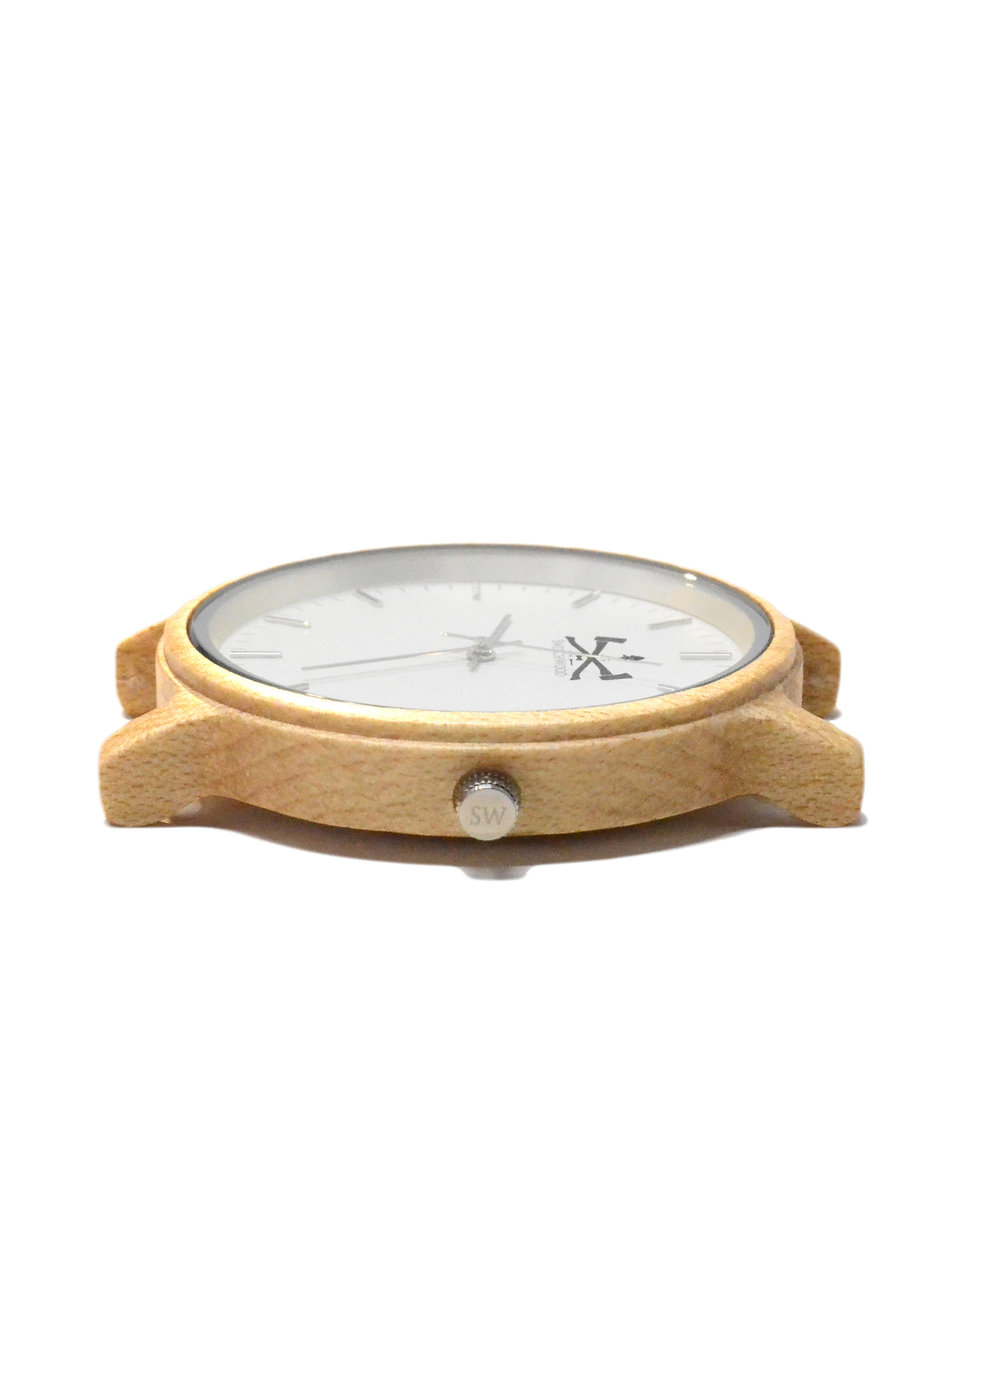 The Admiral Wooden Watch